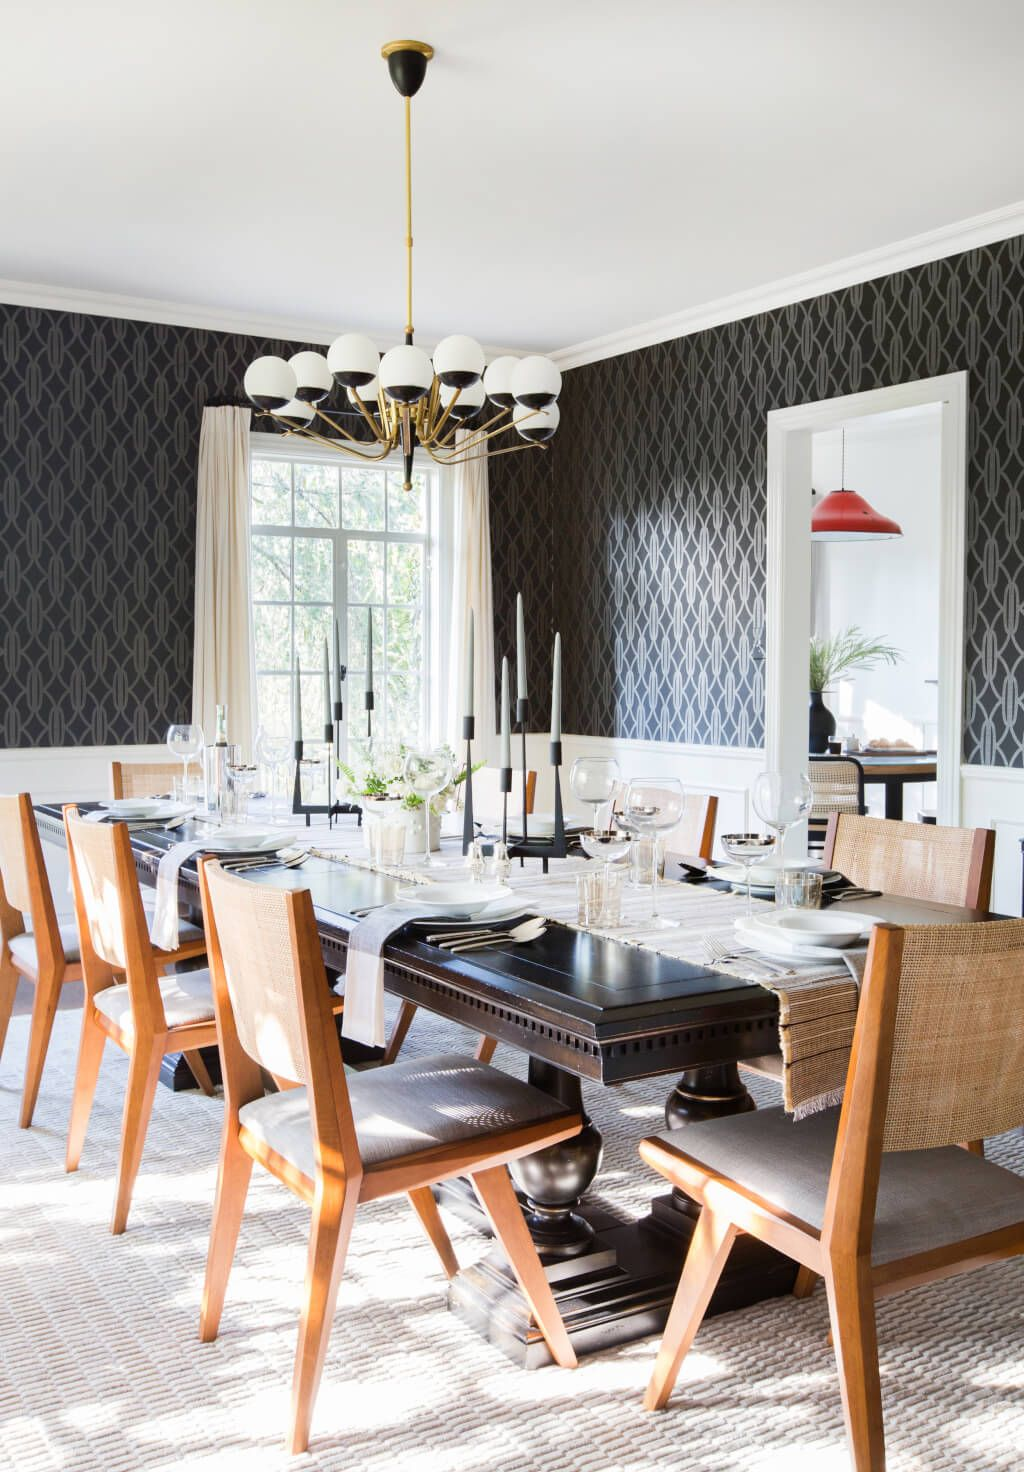 Emily-Henderson_Griffith-Park-House_Traditional-Italian-Modern_Dining-Room_Reveal_03-1024x1472.jpg